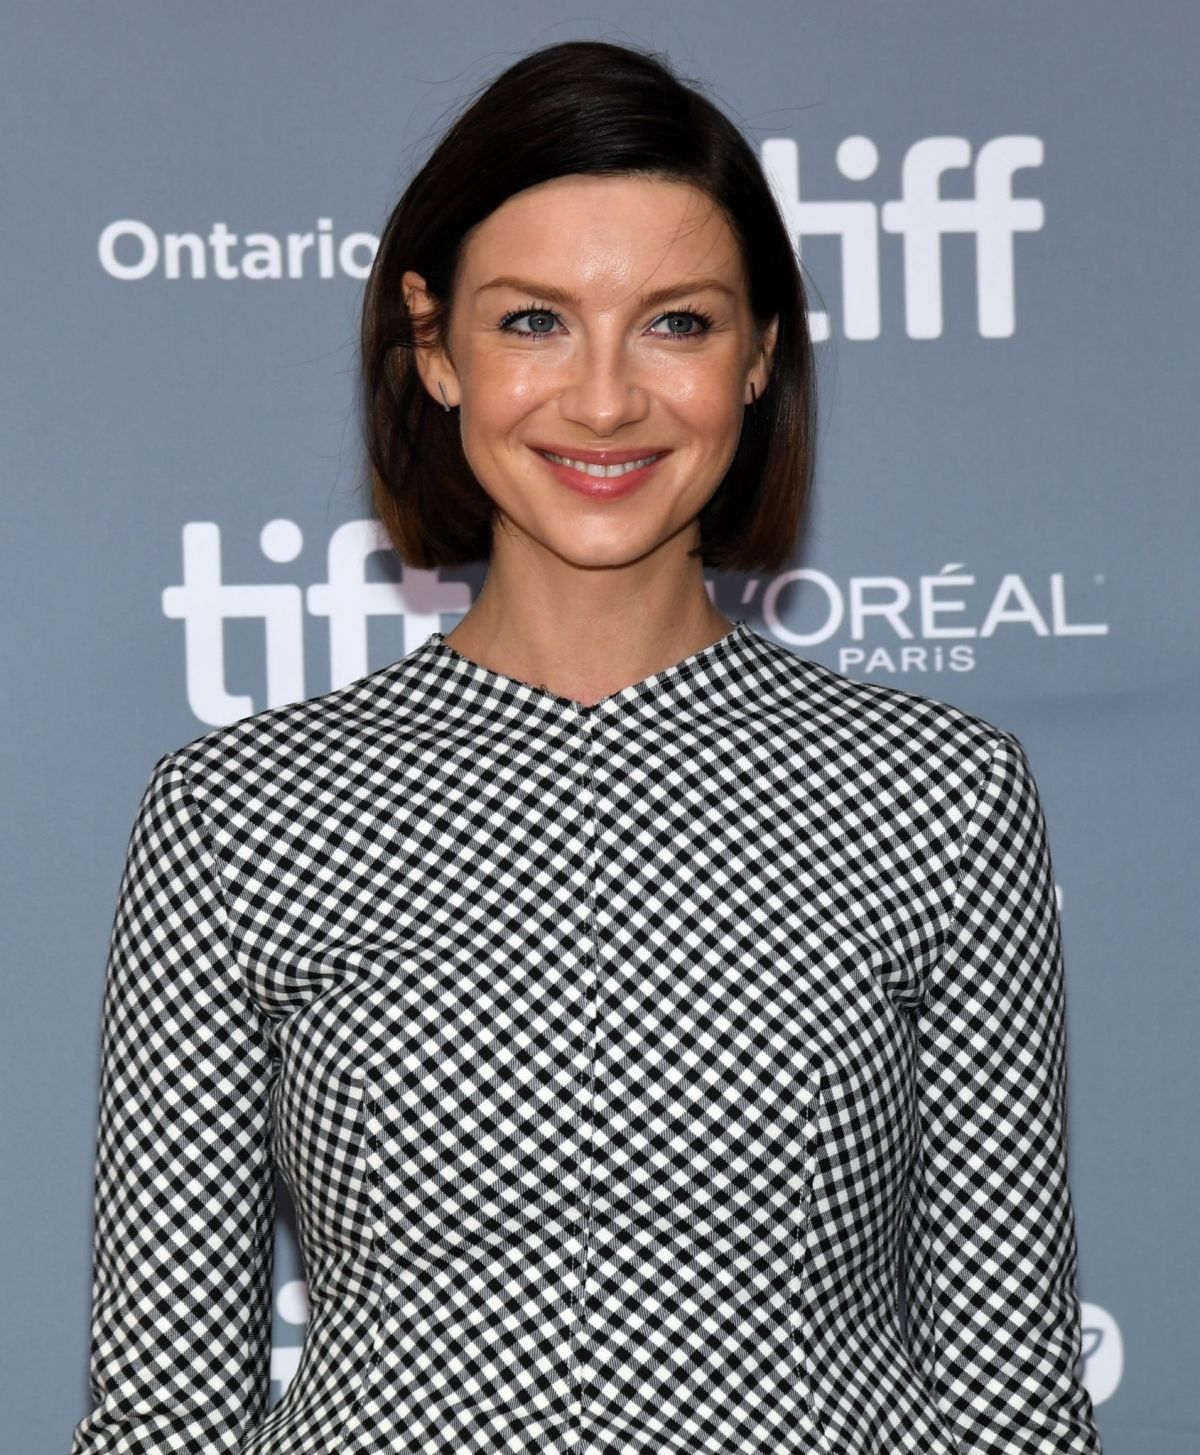 Caitriona Balfe At Ford V Ferrari Press Conference At 2019 Toronto International Film Festival 09 10 2019 Hawtcelebs